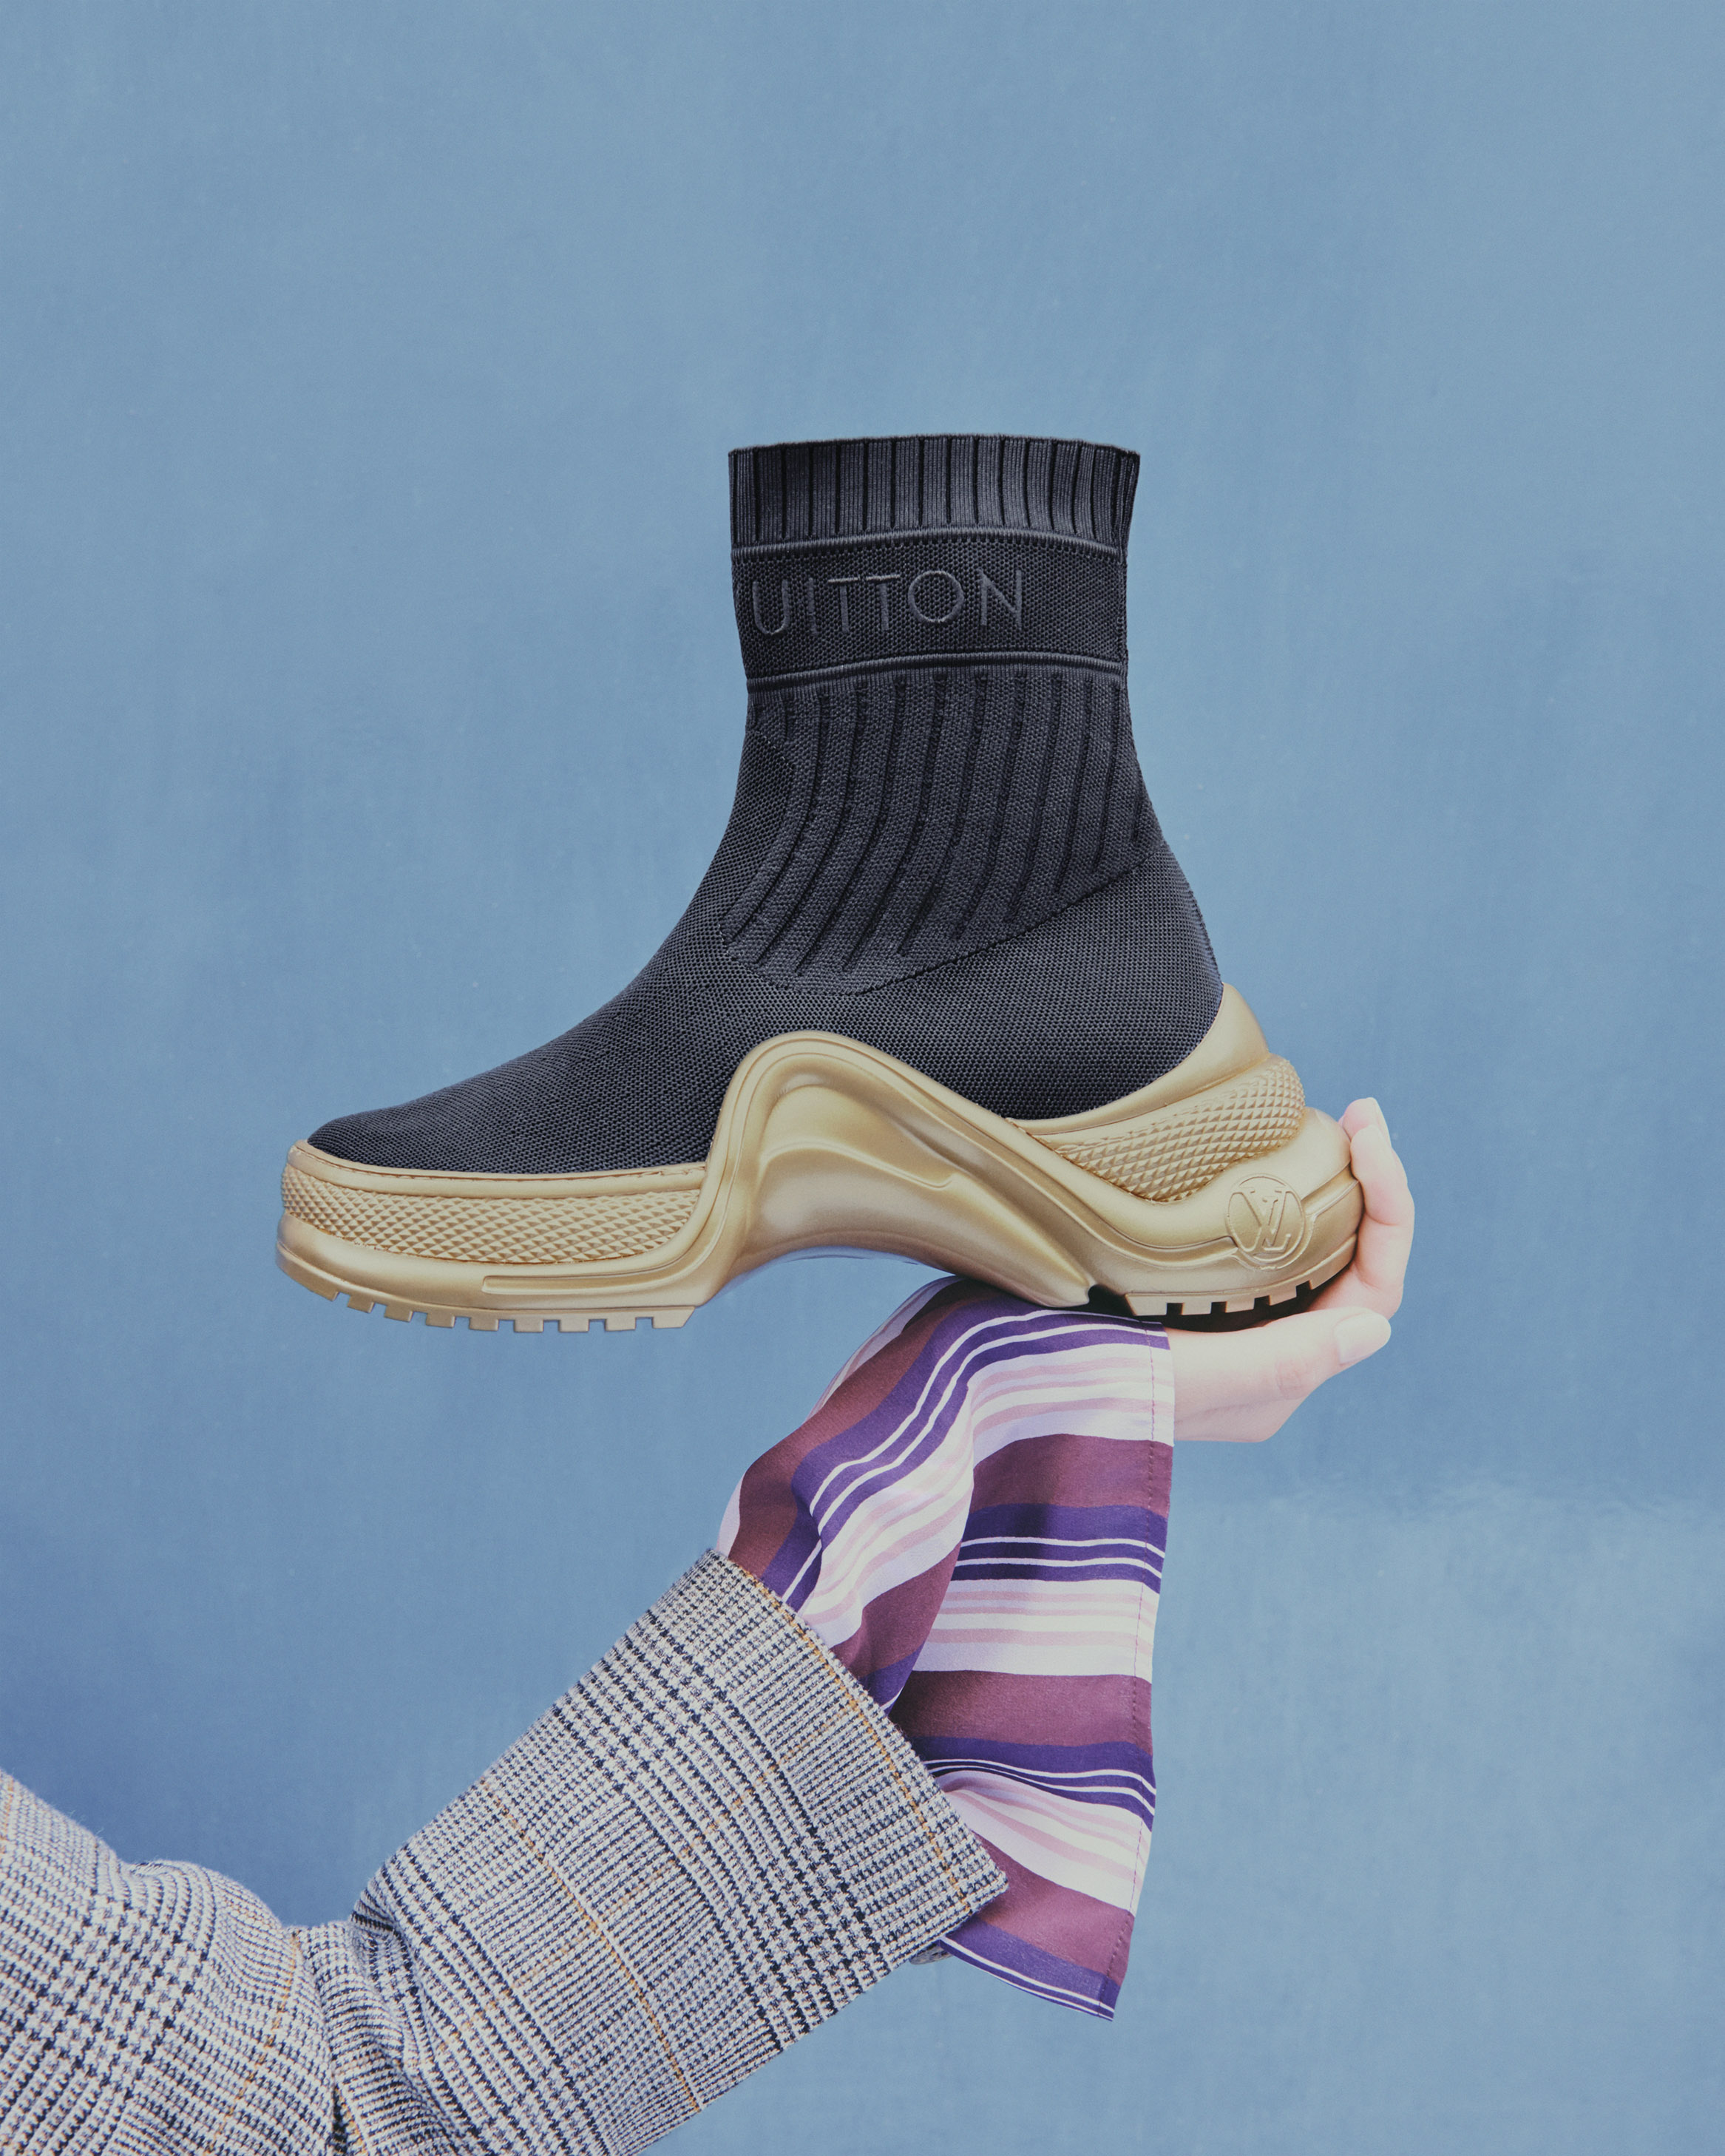 34e97ff70265 Sneaker boot Sock-like textile LV Archlight For the Louis Vuitton 2019  Cruise collection